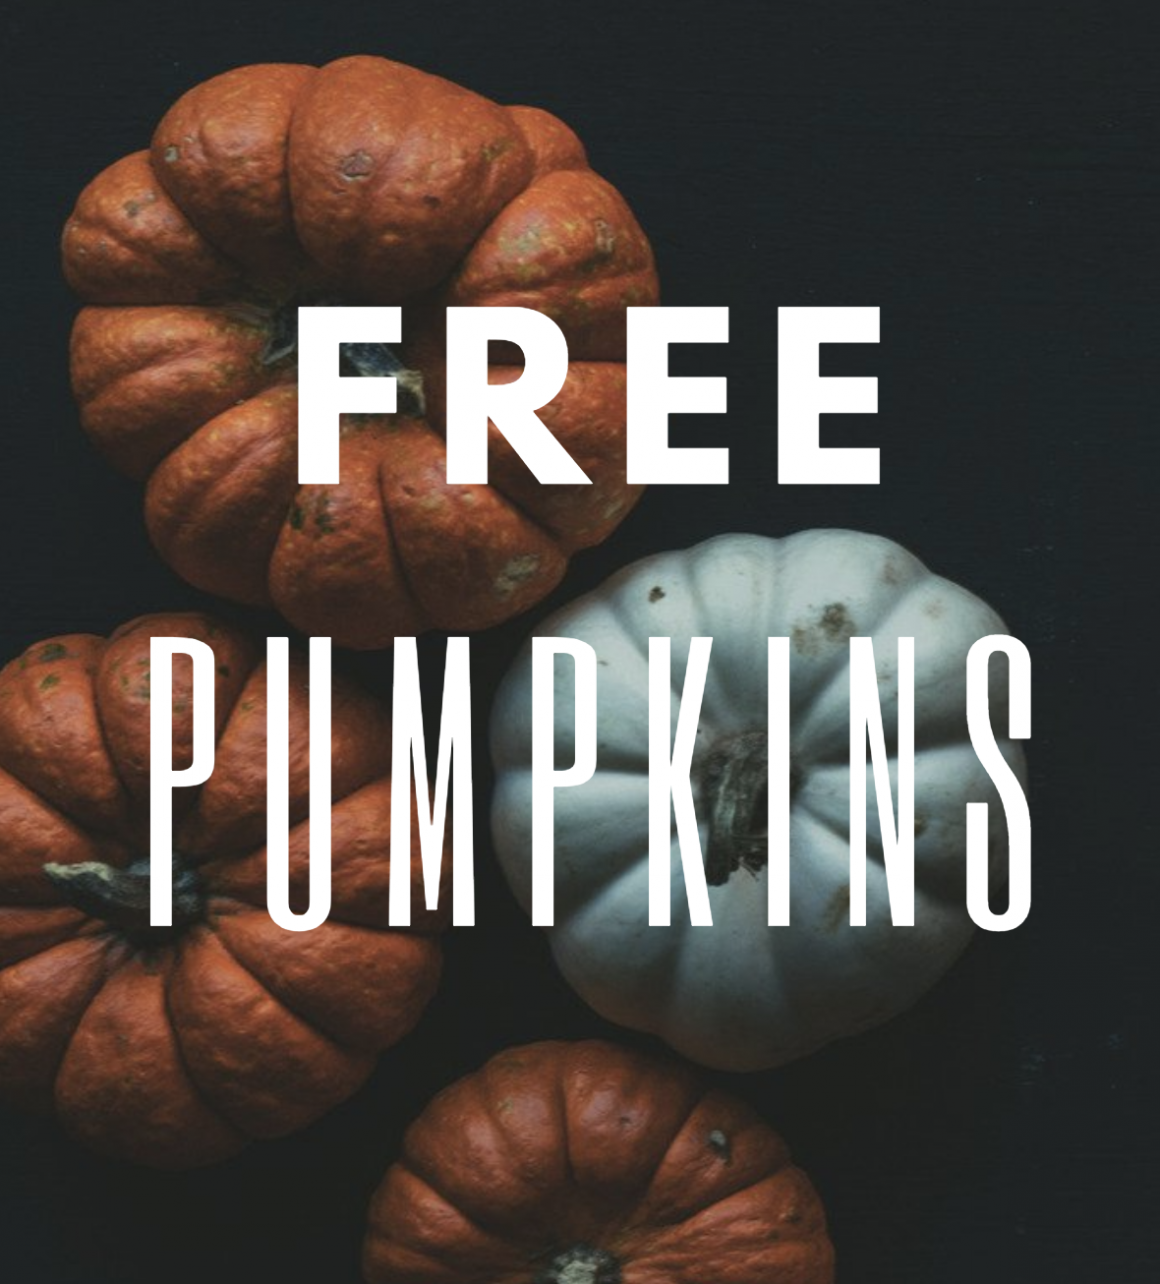 Save money on Pumpkins